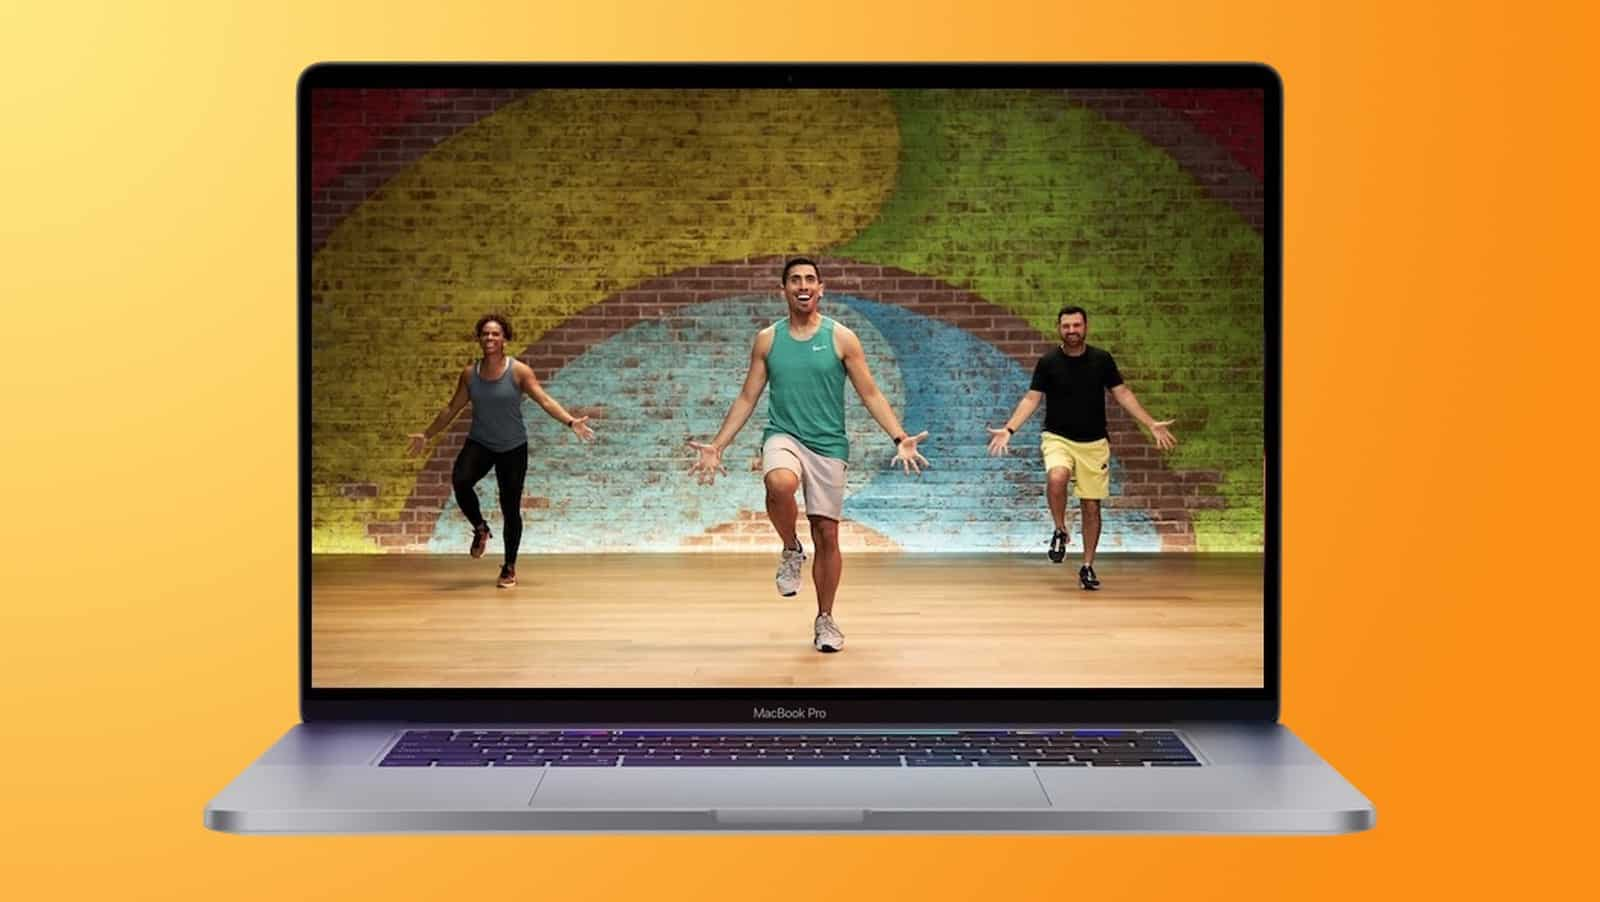 Apple Fitness+ for Mac via AirPlay to release with macOS Monterey